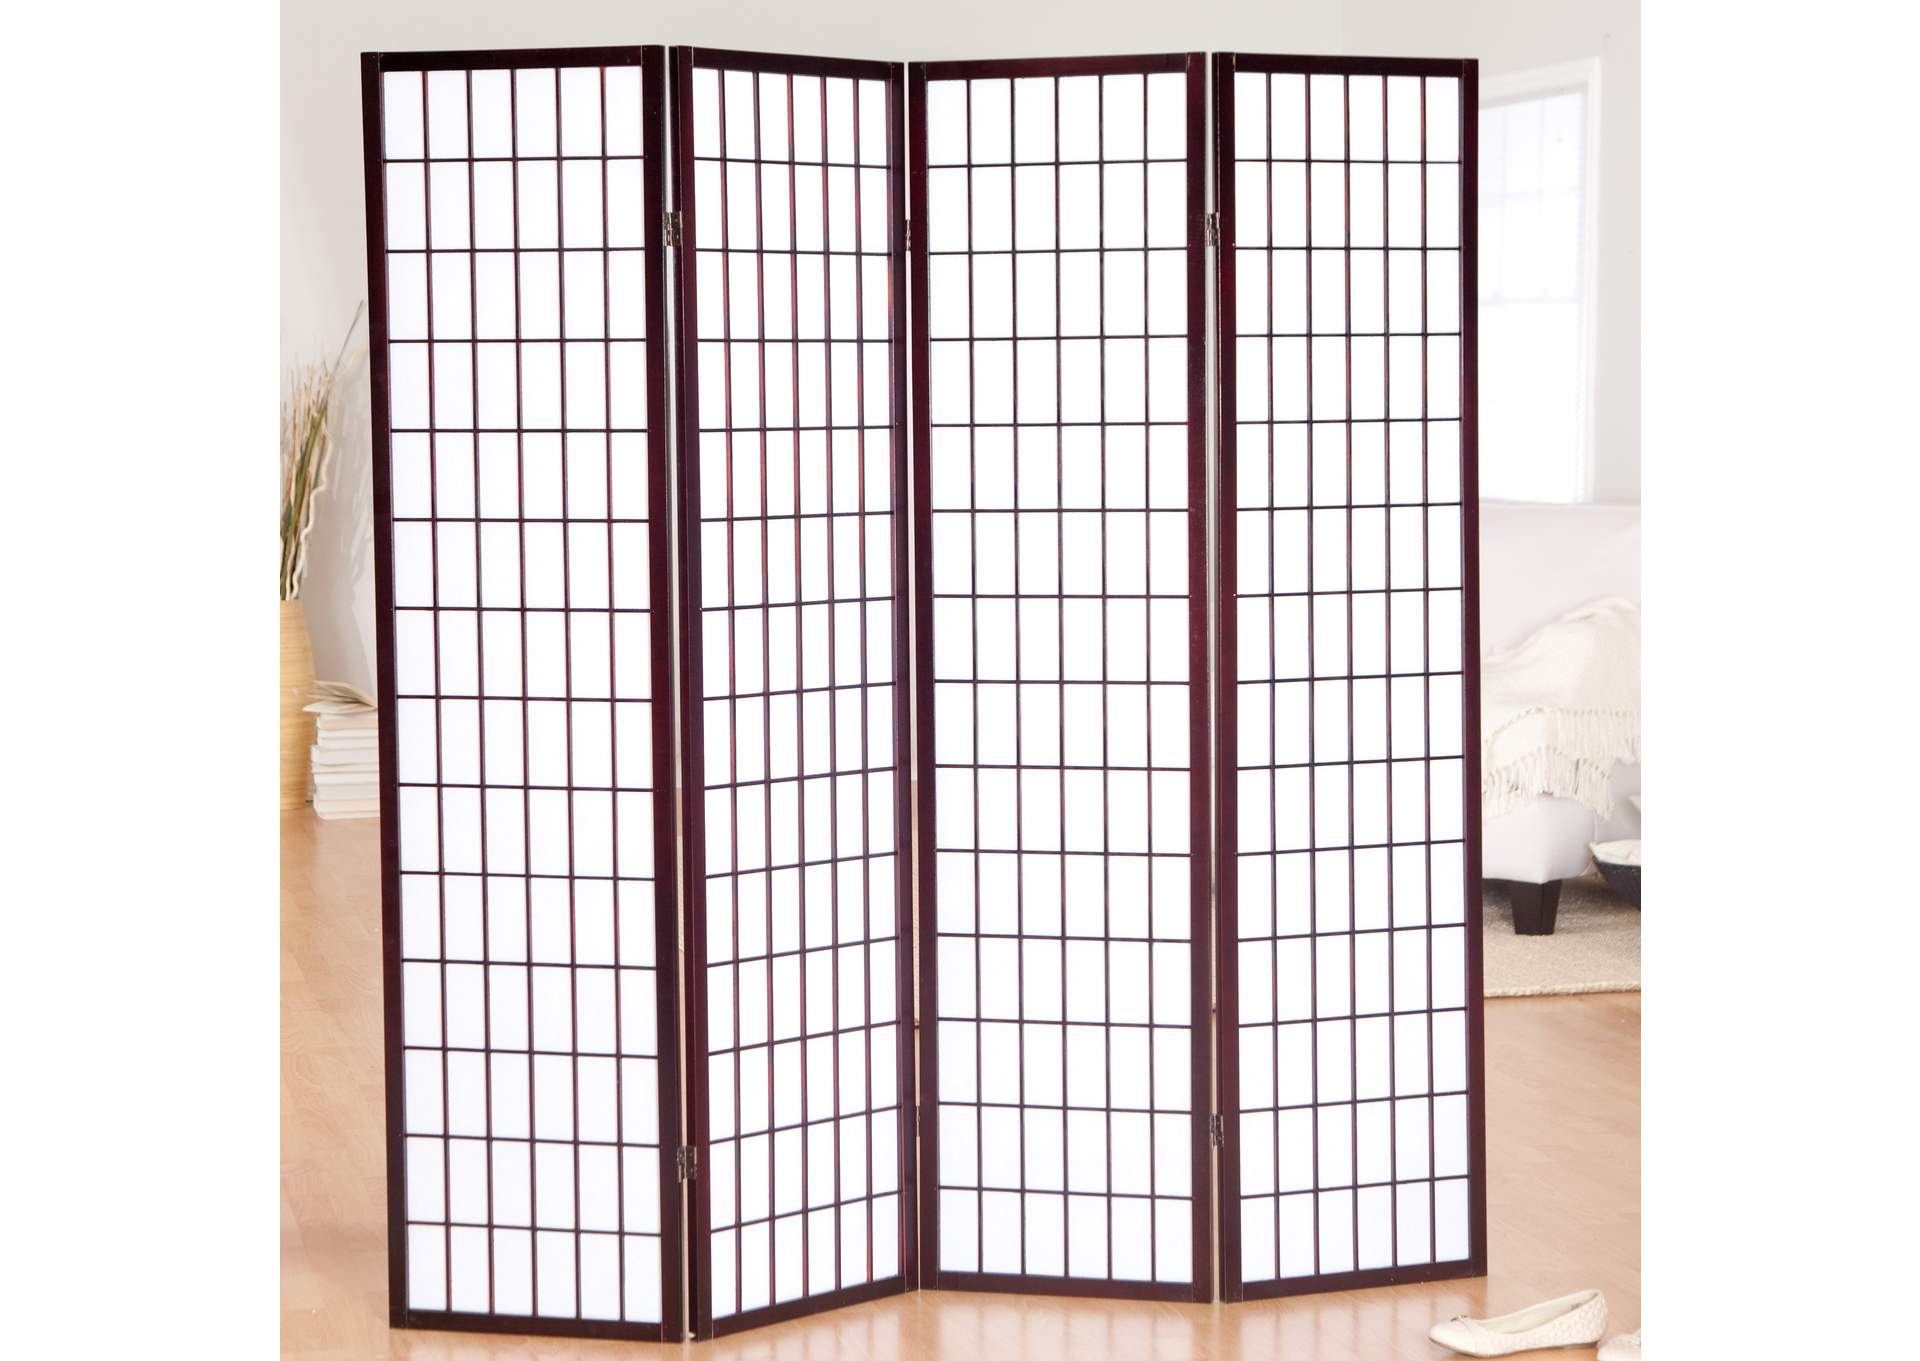 Cherry 3 Panel Screen,Global Trading